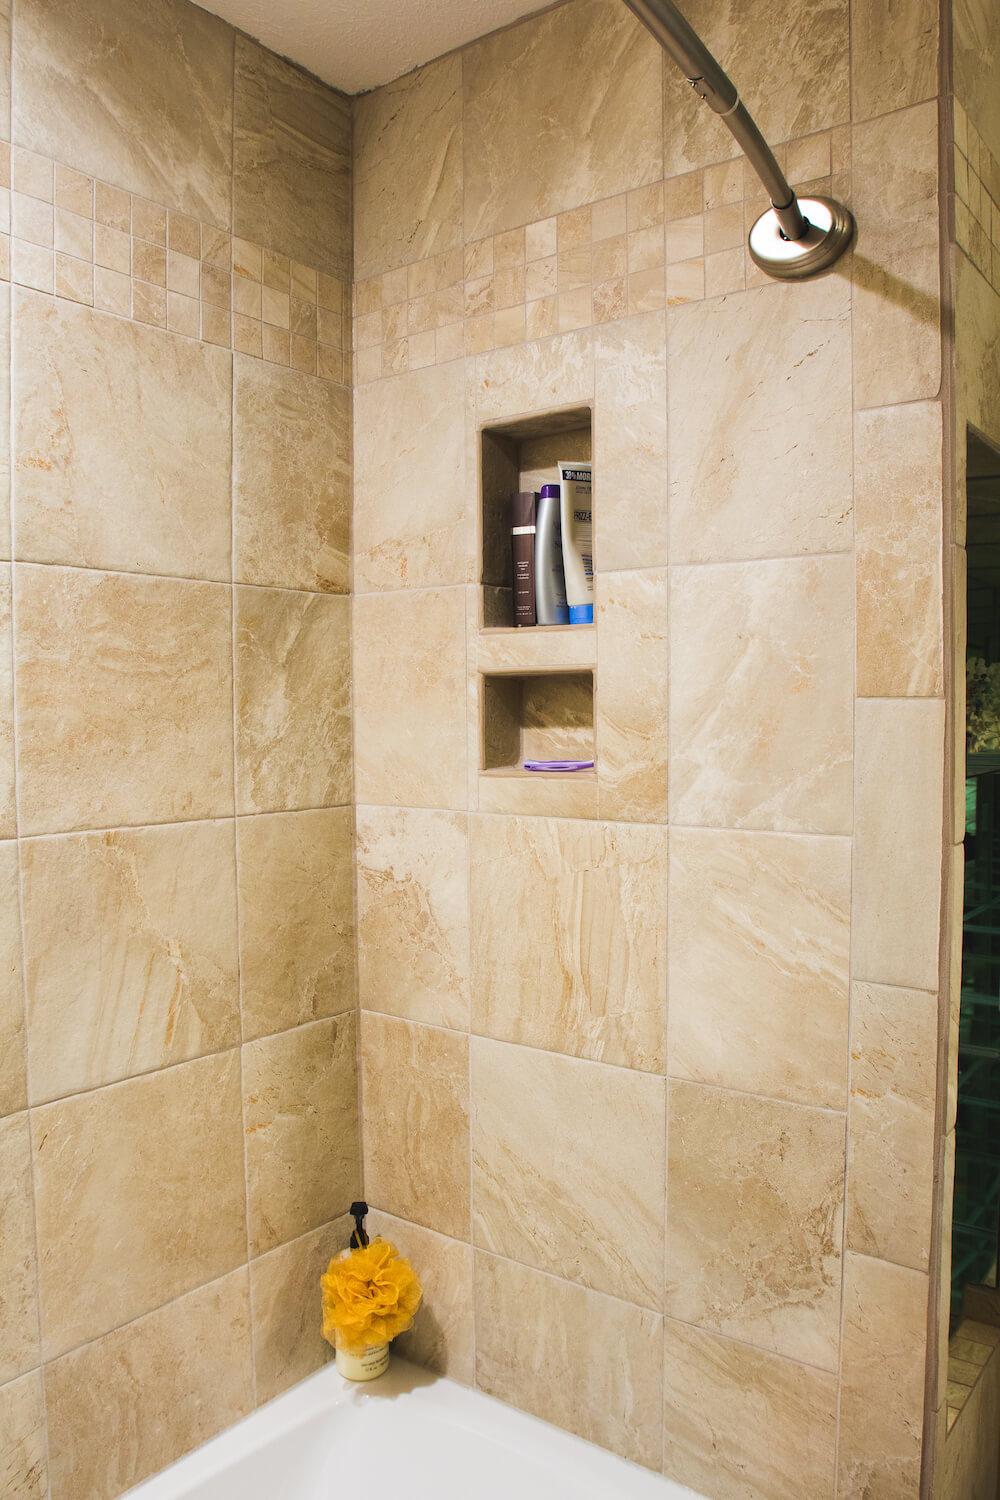 Cost To Install Ceramic Tile In Bathroom Shower - Bathroom Designs